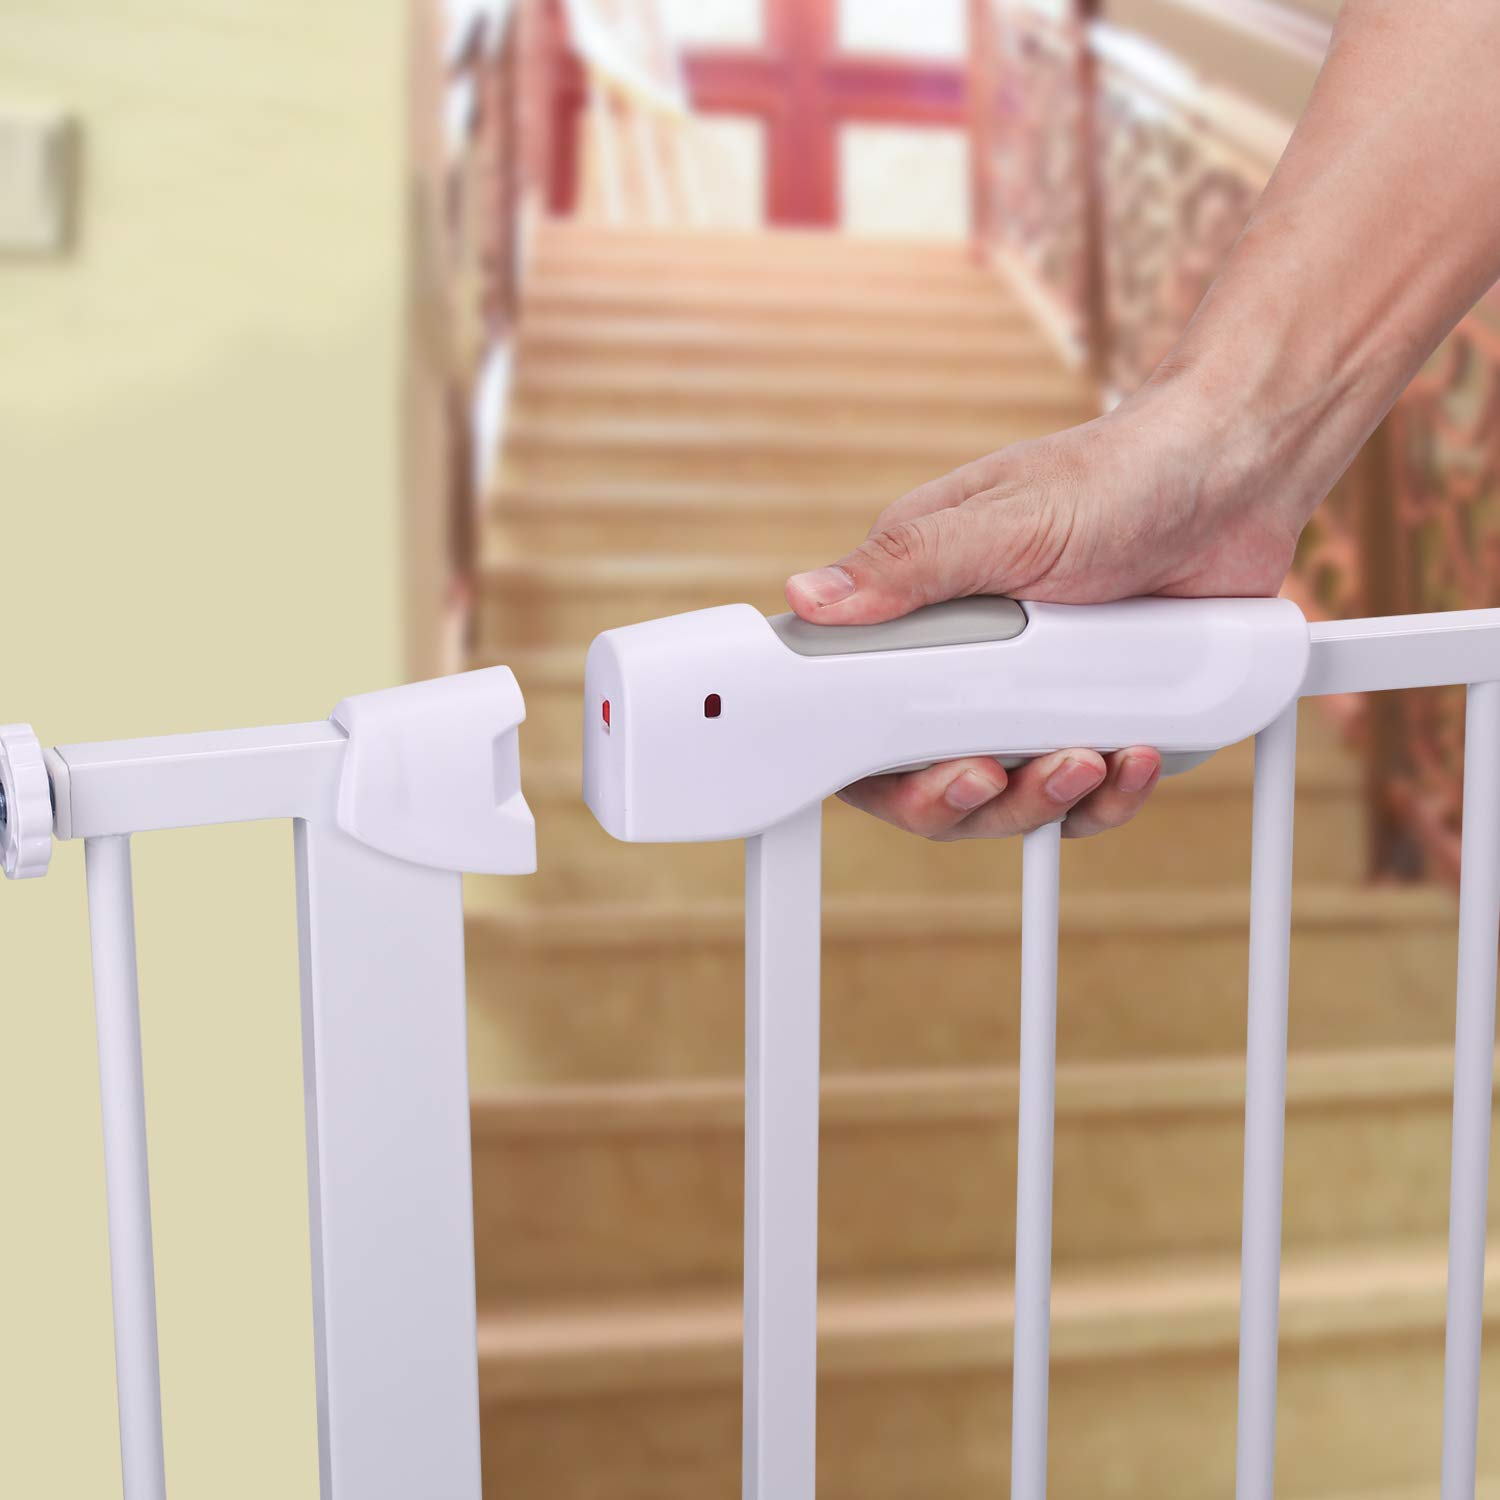 Extra Wide Tall Baby Gate – BabyElf Indoor Safety Adjustable Walk Thru Gate – Include Extension Kit and Wall Mounts White